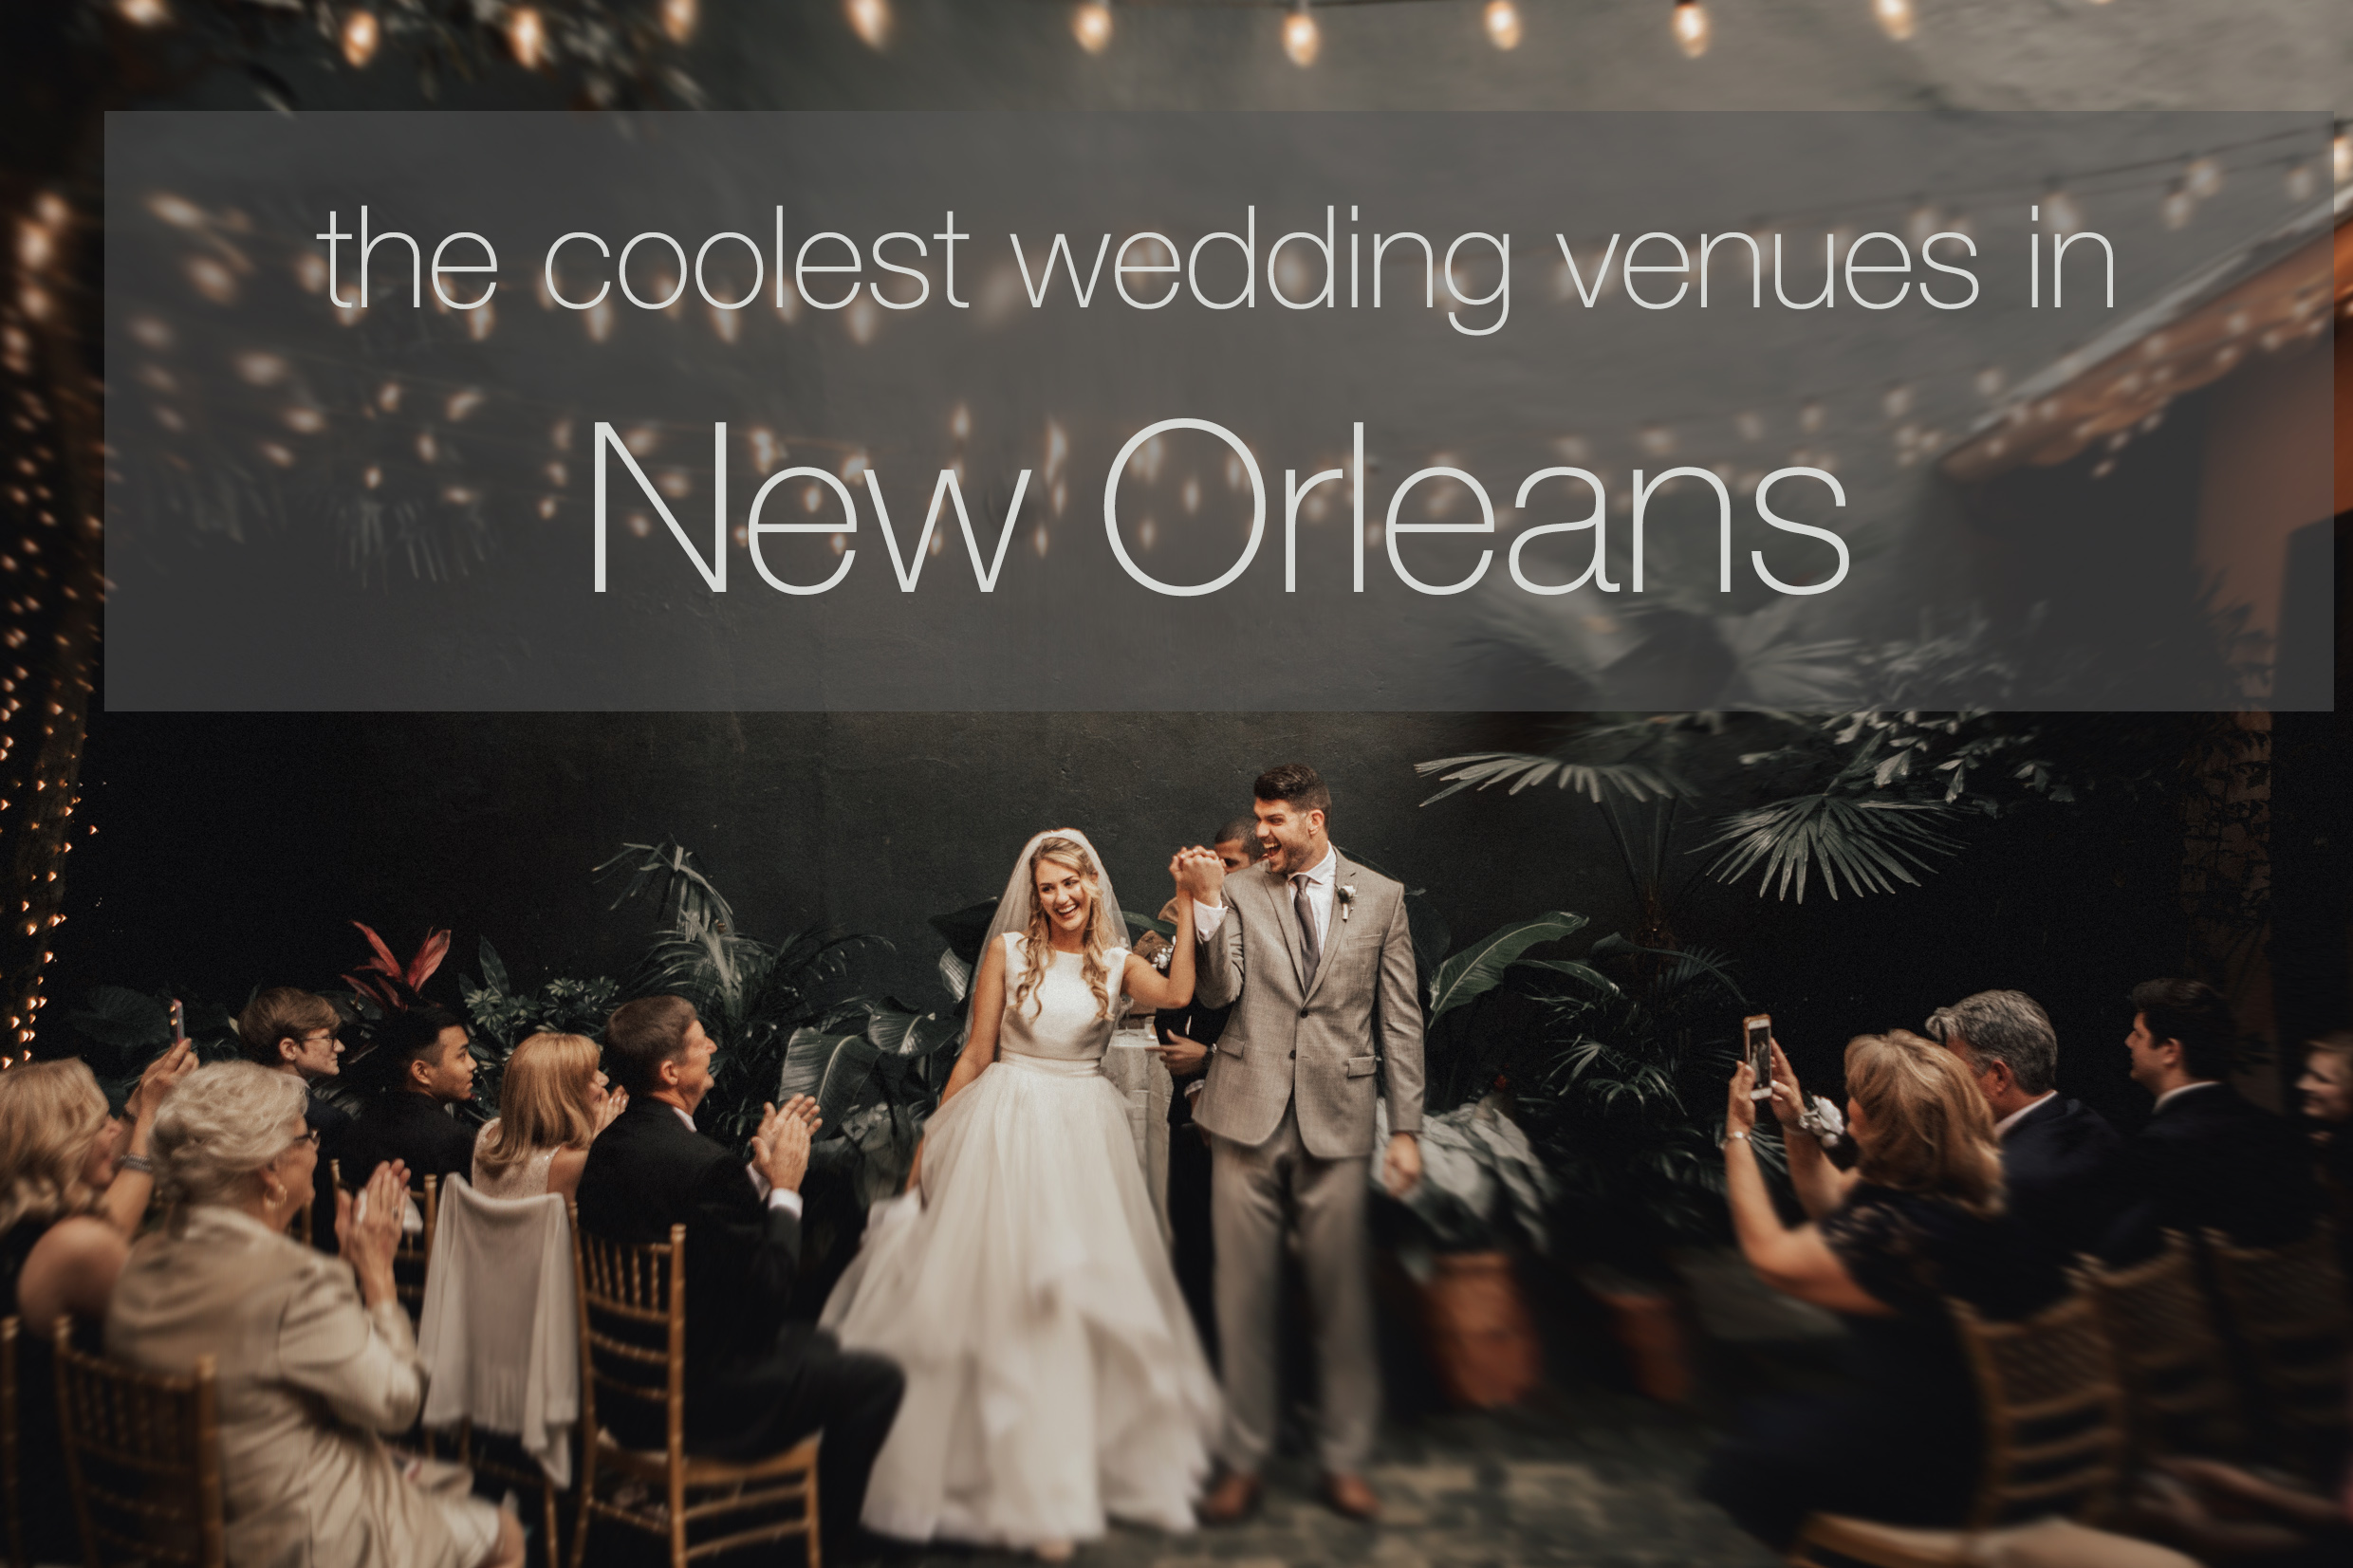 Cool wedding venues in new Orleans